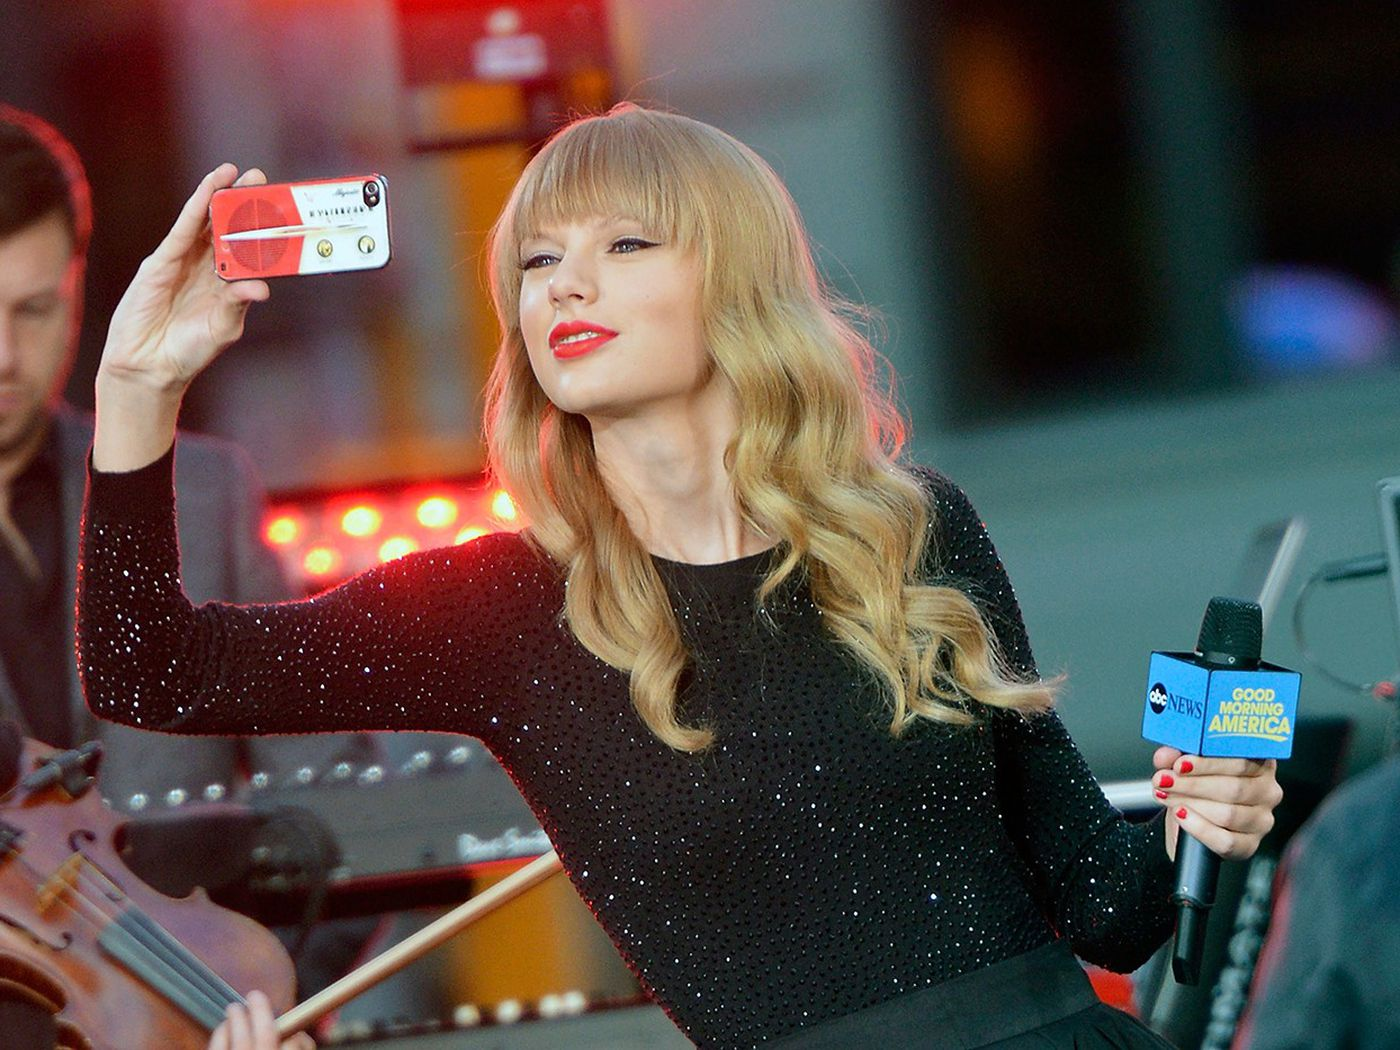 A Brief History Of Pop Stars Shilling For Cellphone Companies The Ringer